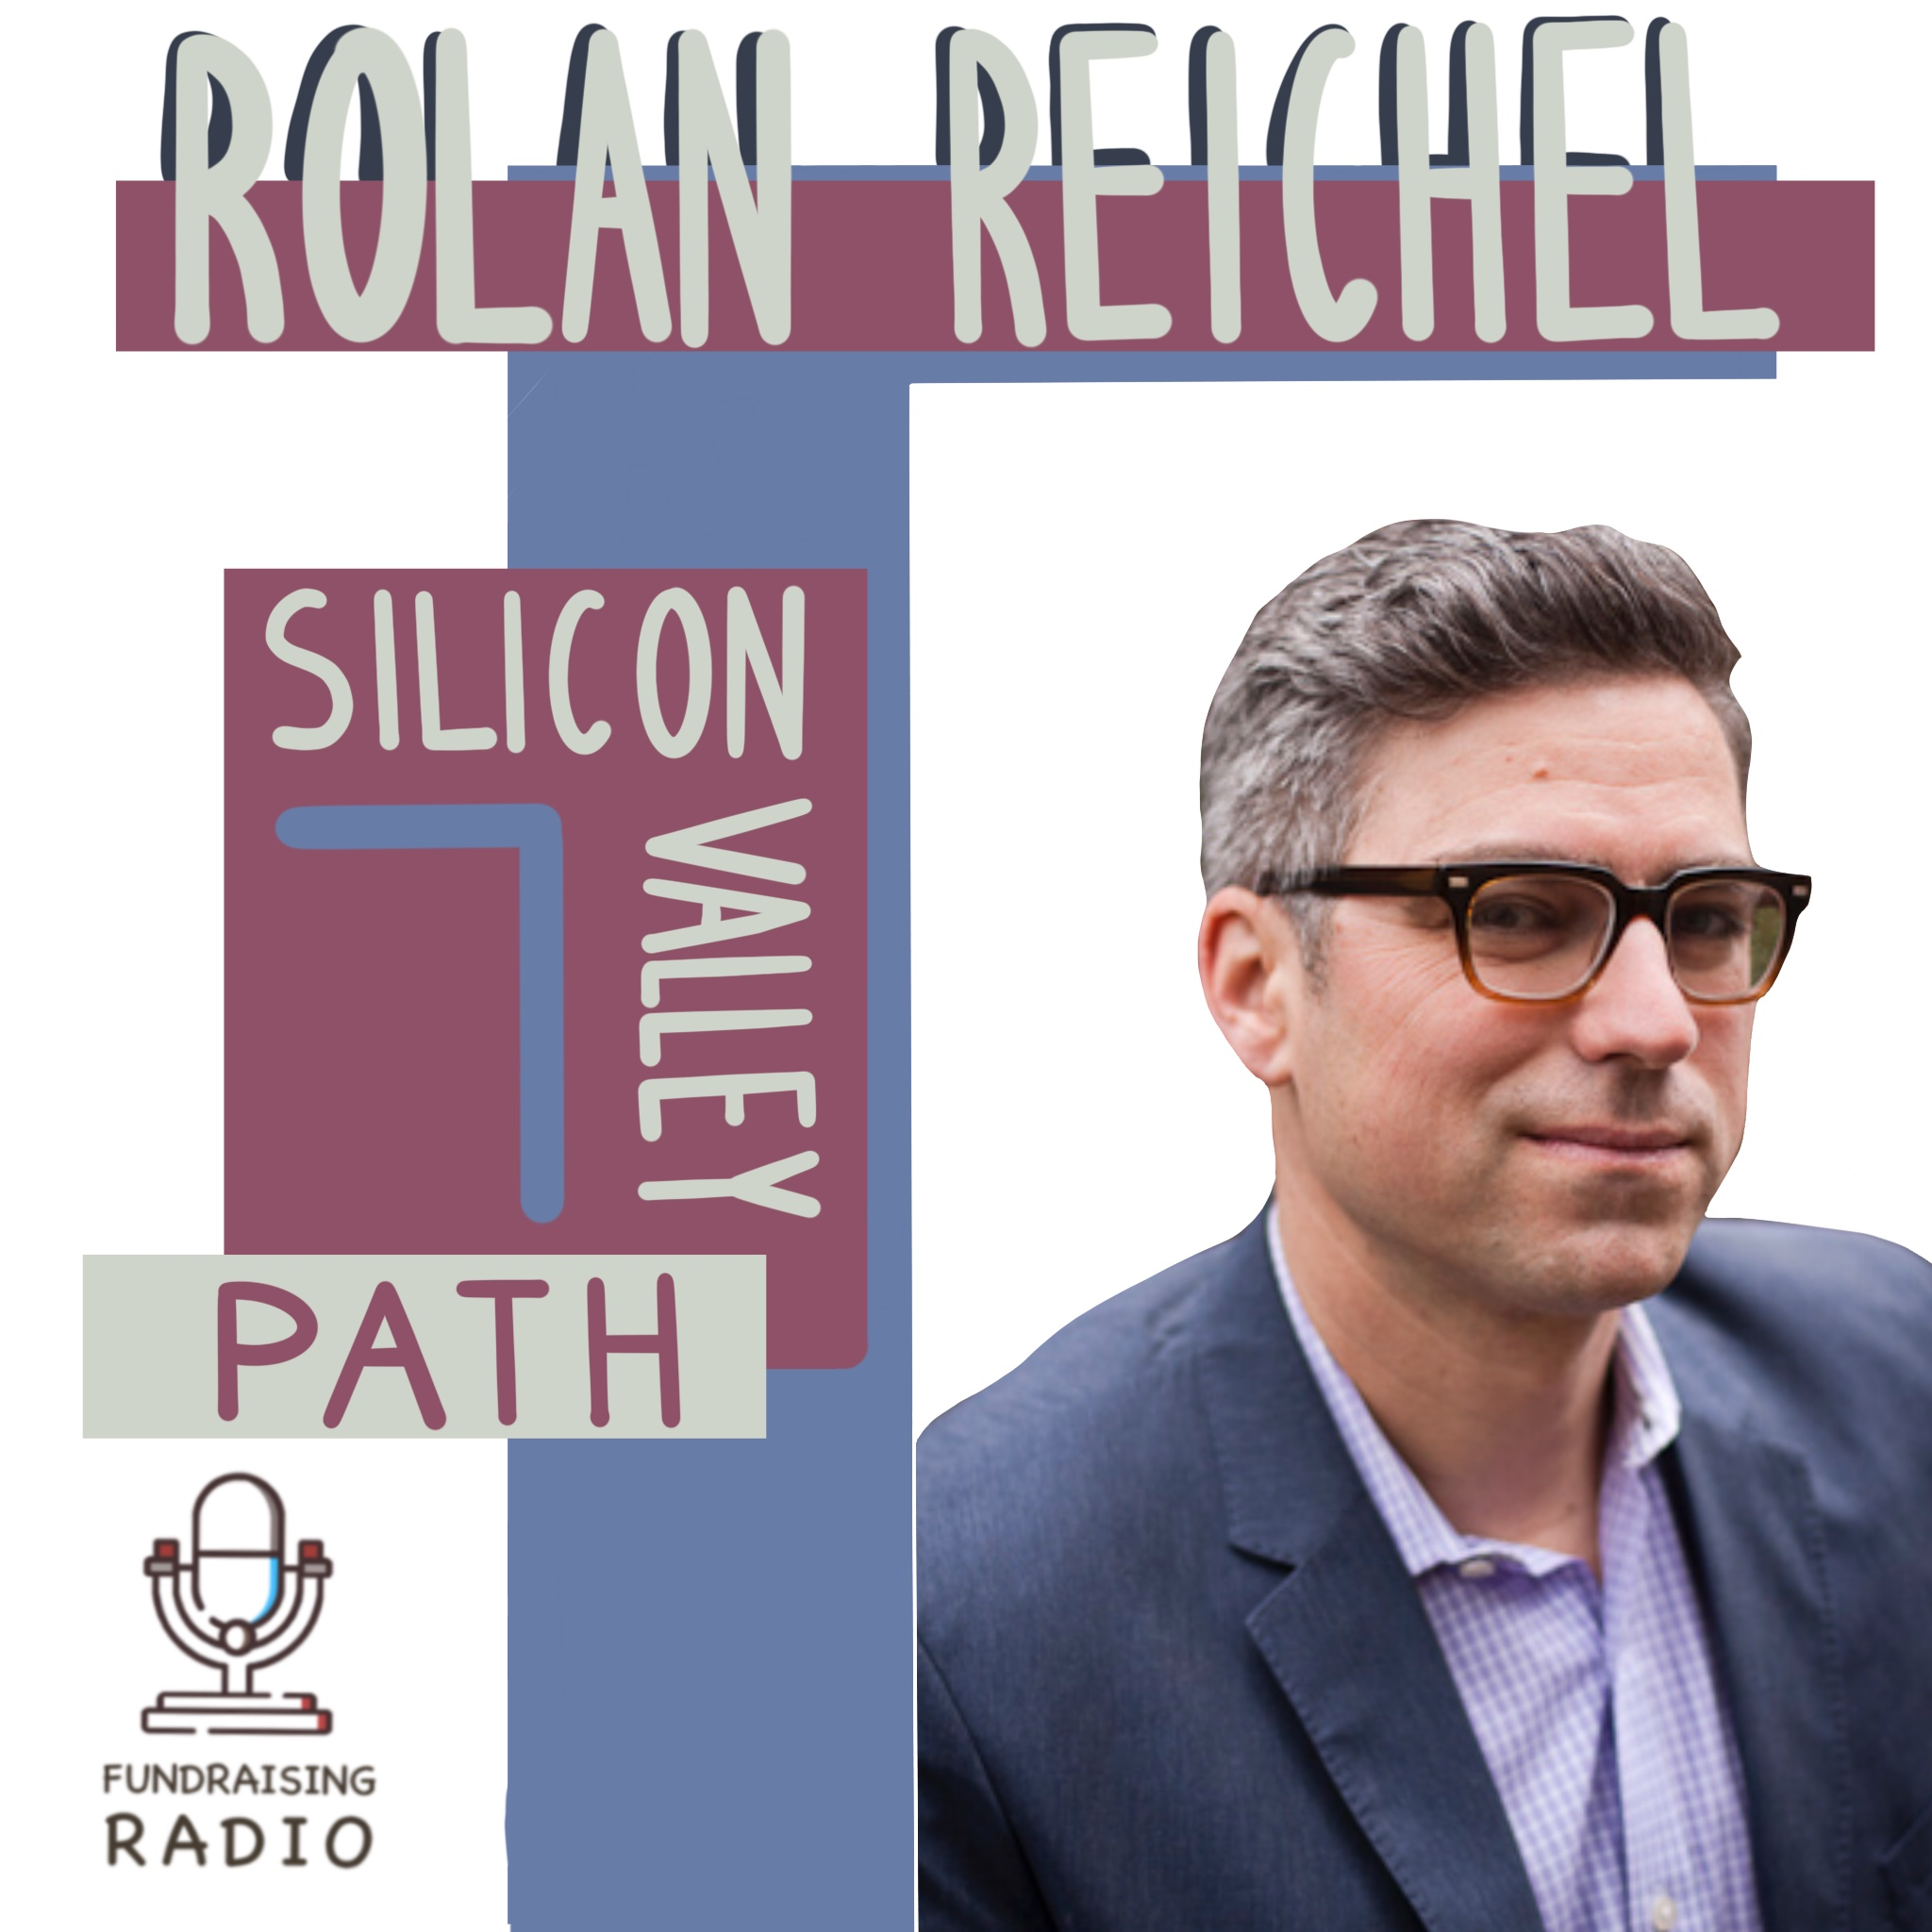 Silicon Valley path - how does it work and what are the alternative routes? By Rolan Reichel.